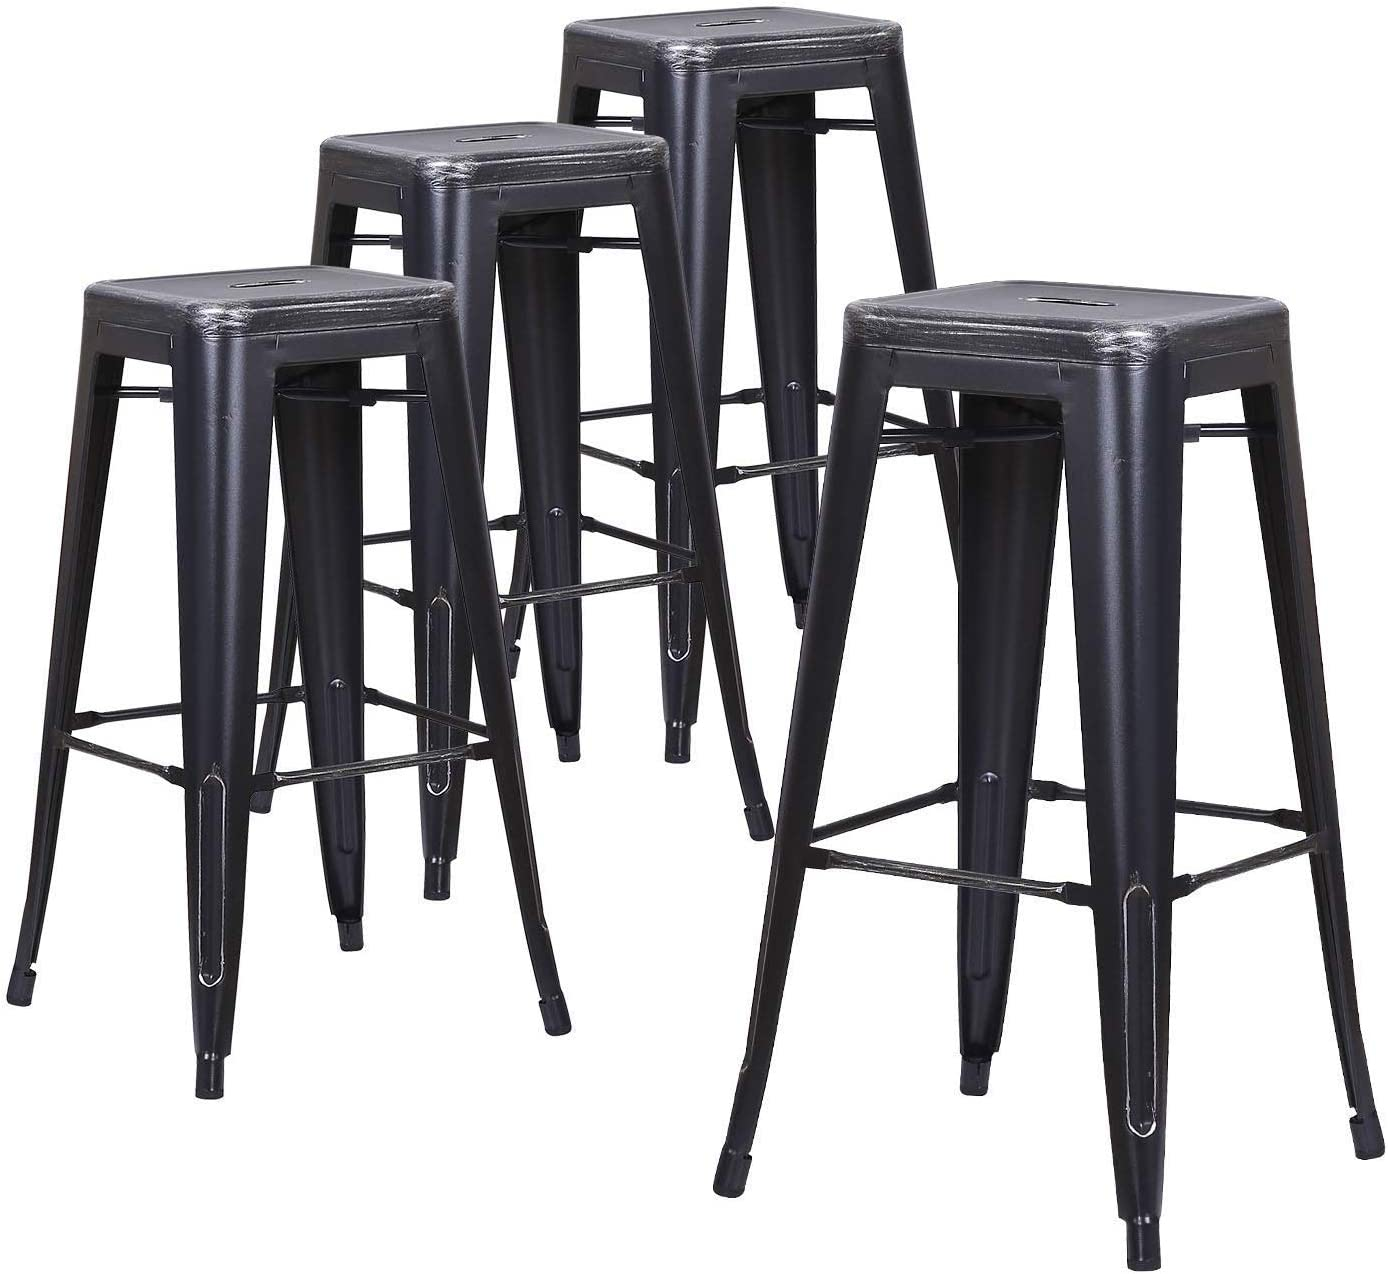 LCH 30 Metal Industrial Backless, Set of 4 Indoor Outdoor Counter Stackable Bar stools, 30 Inch, Silver Sanded Black